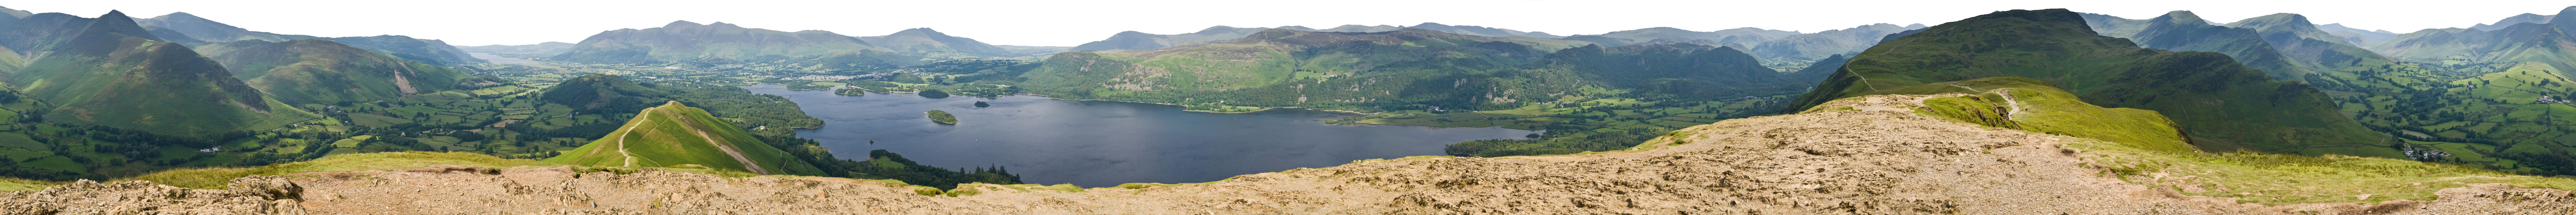 Picture of Lake District Pano - click to view original size